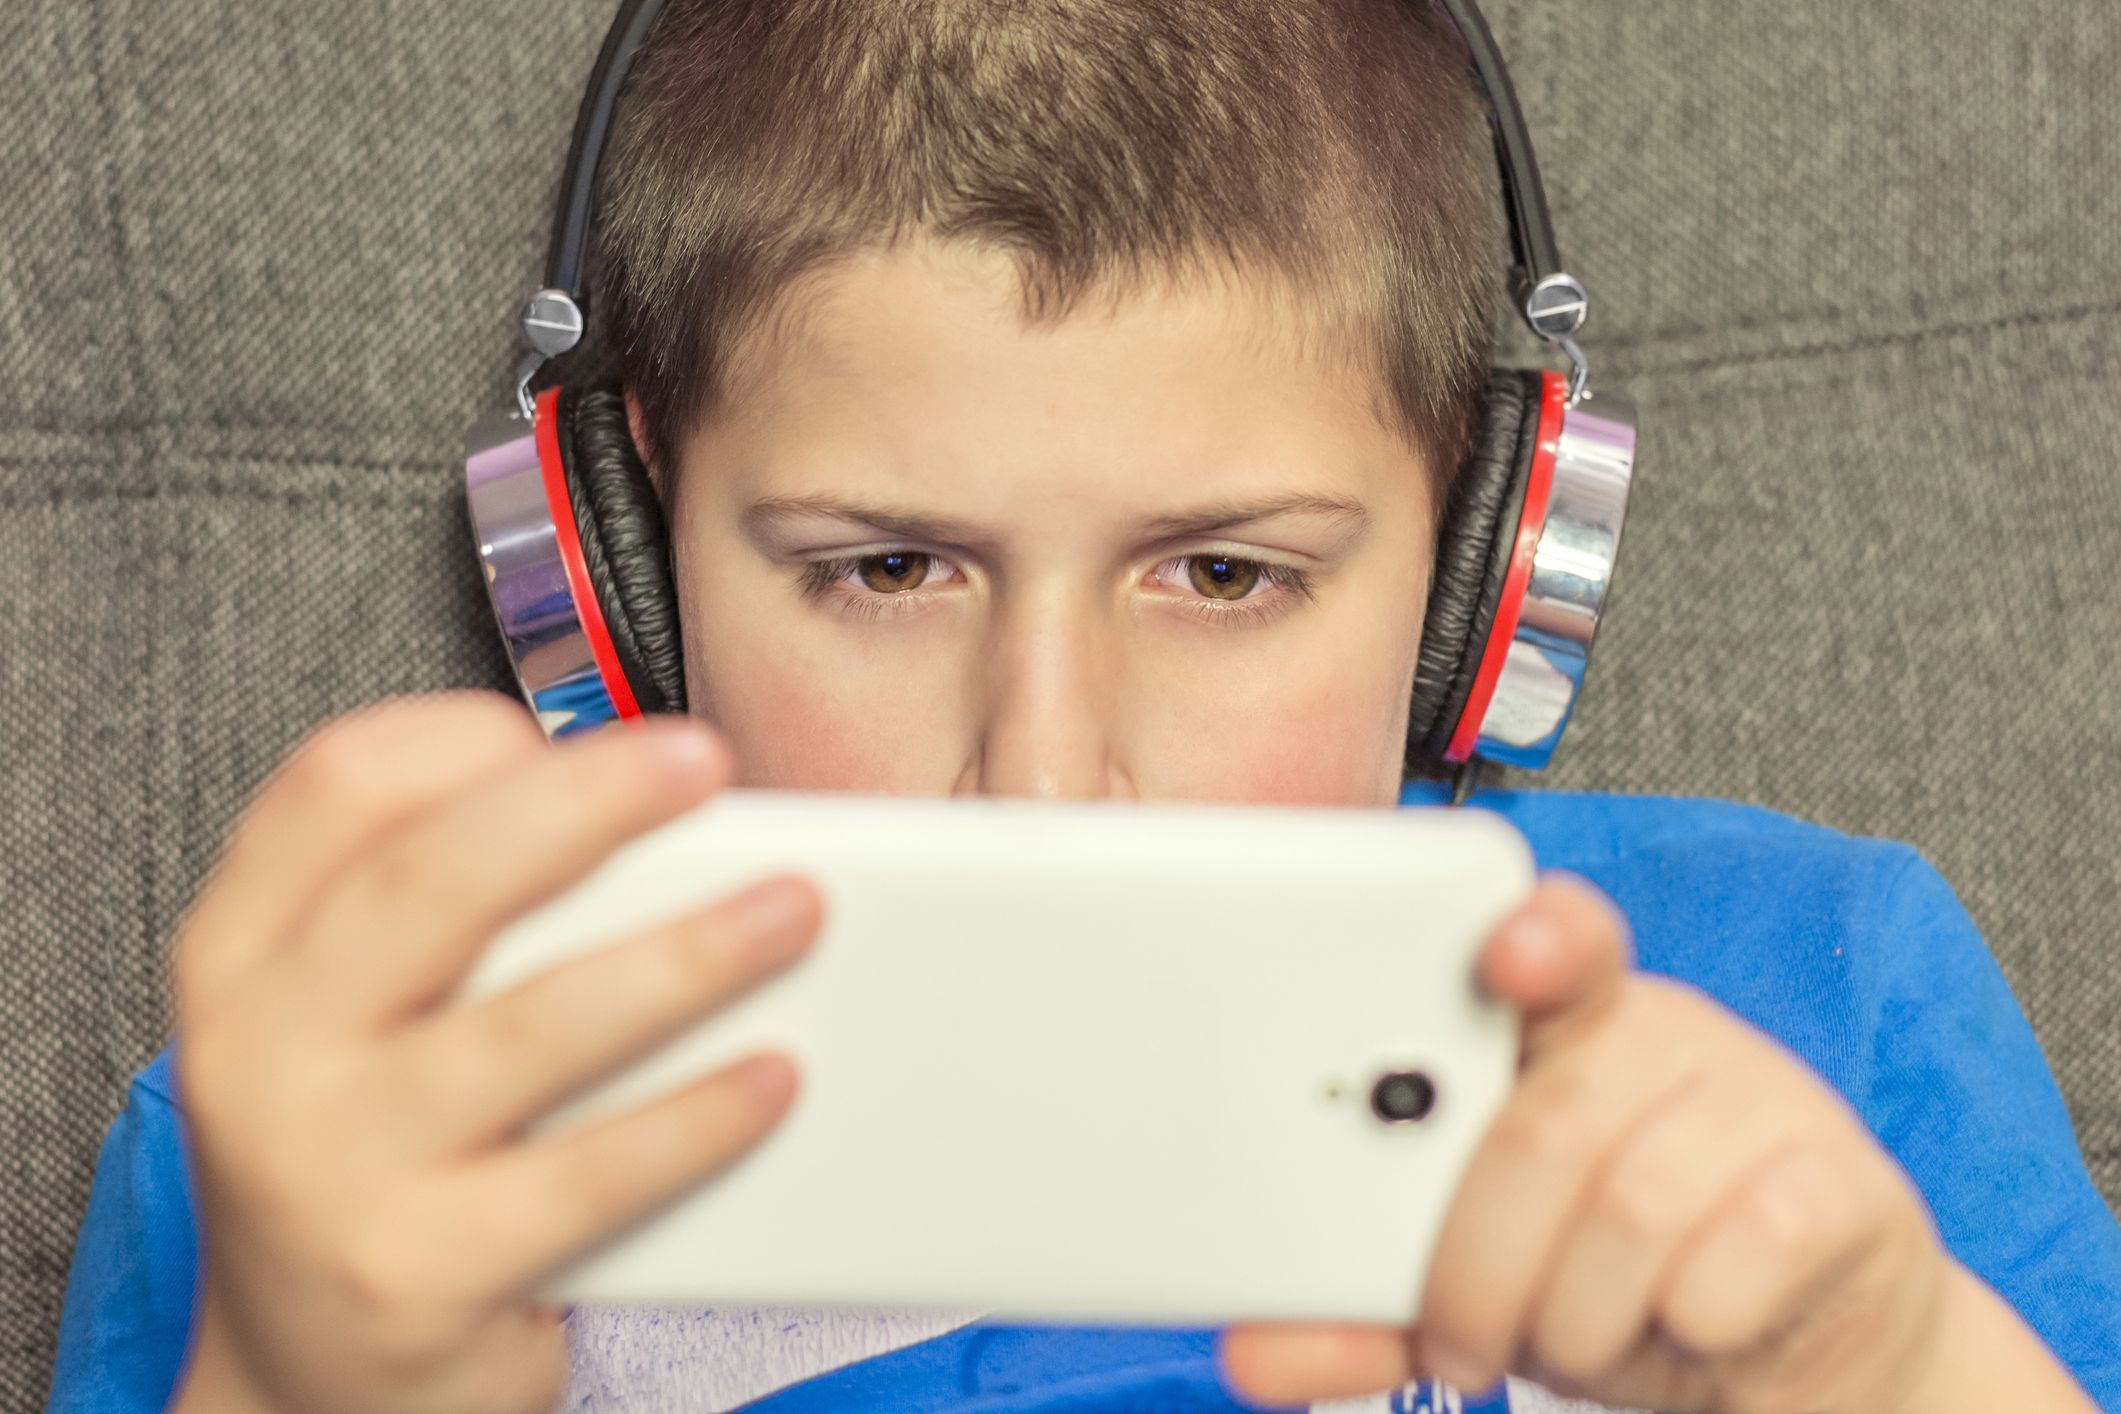 child-boy-teen-smartphone-social-media-stock